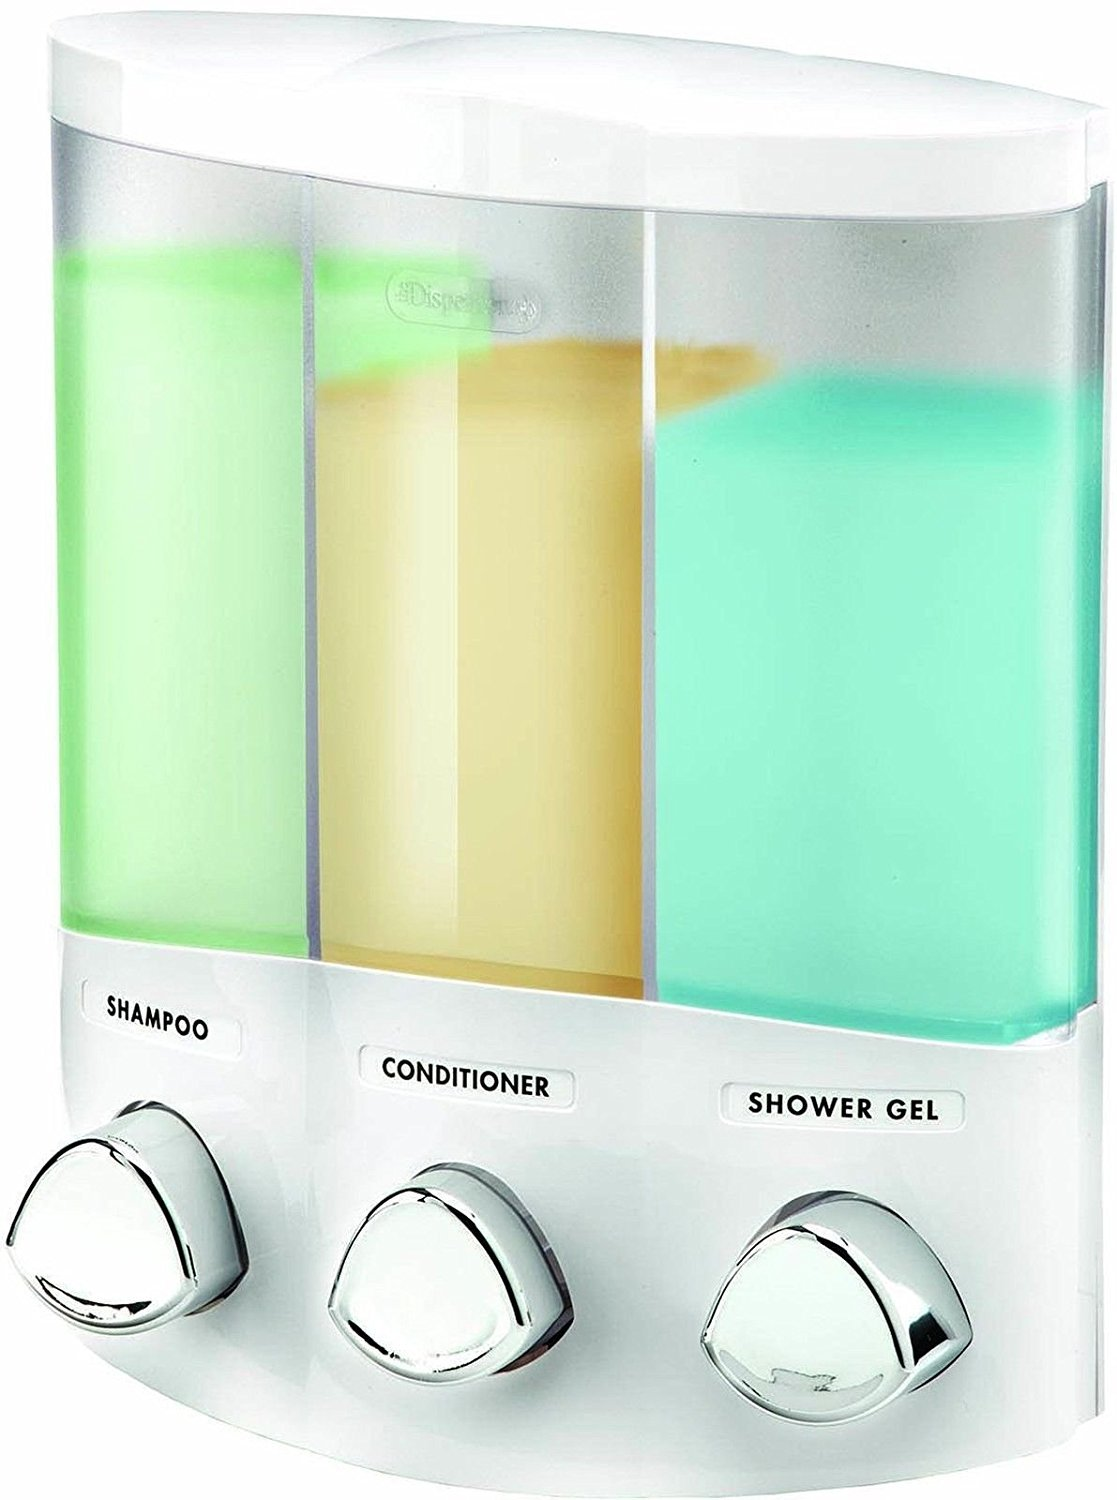 3 Chamber Shampoo Conditioner Soap Dispenser. Bathroom Shower Bath Tub Wall Pump